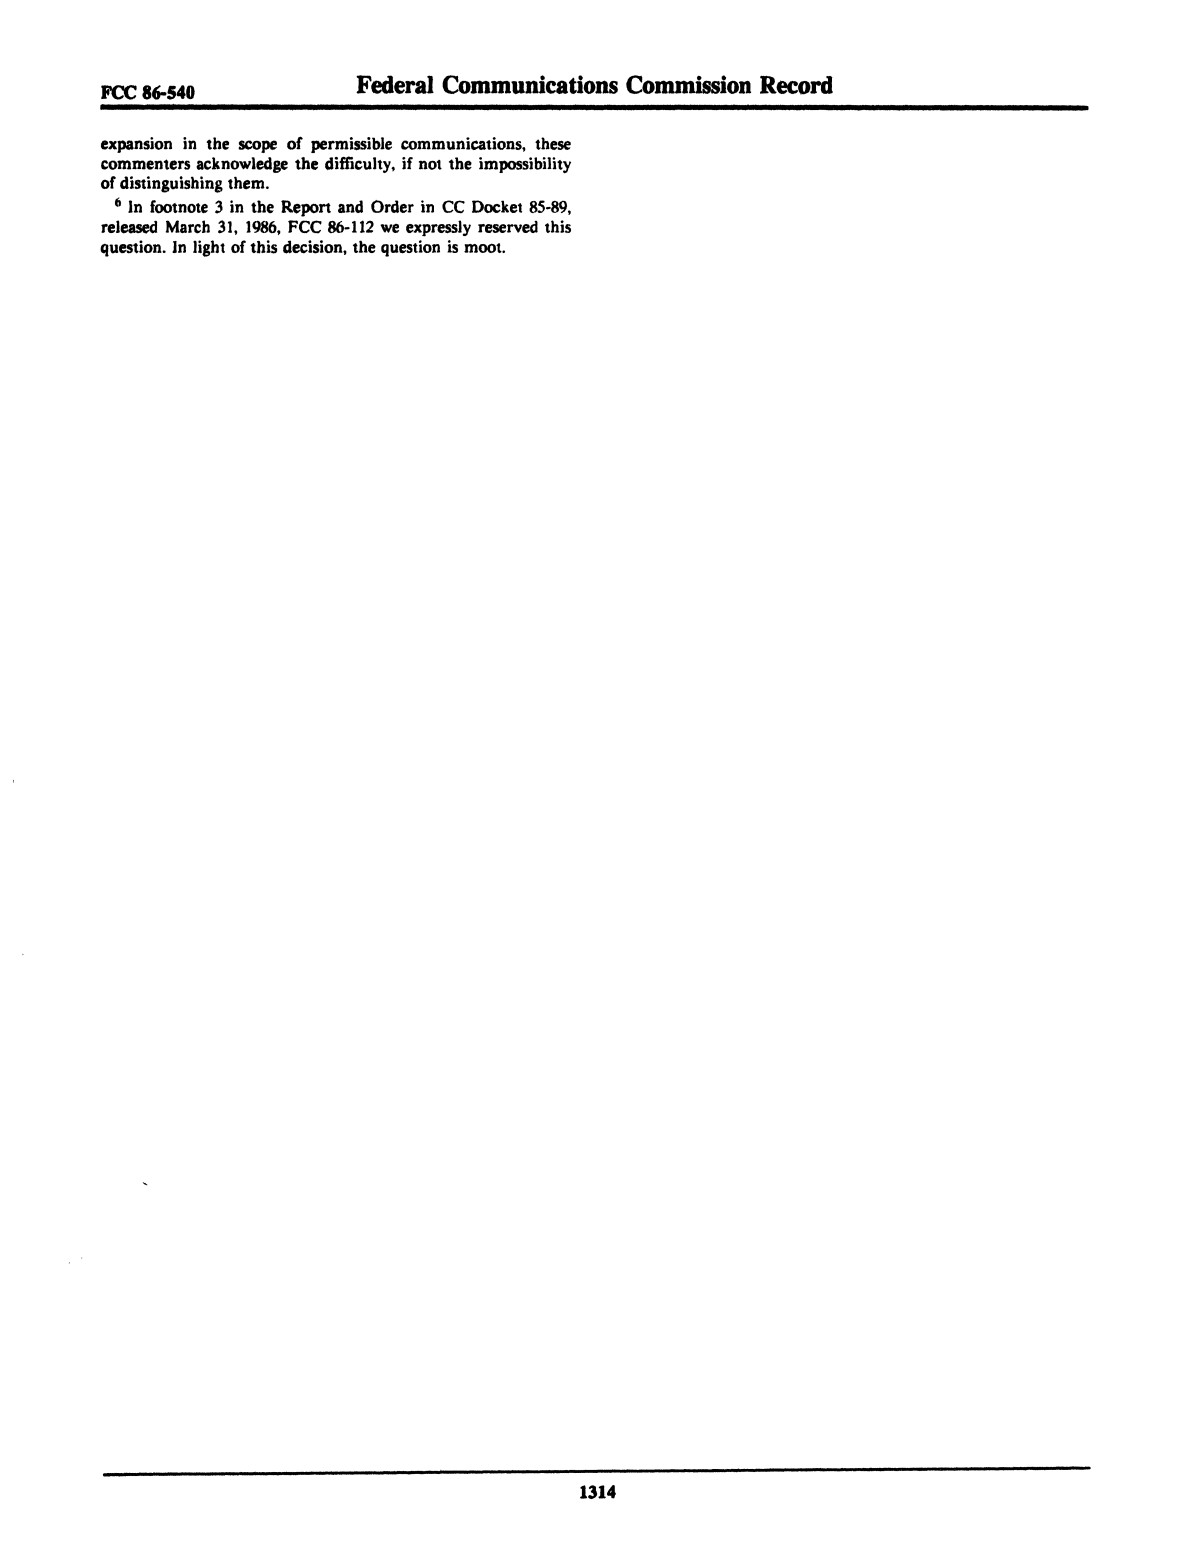 FCC Record, Volume 1, No. 7, Pages 1267 to 1368, December 22, 1986 - January 2, 1987                                                                                                      1314